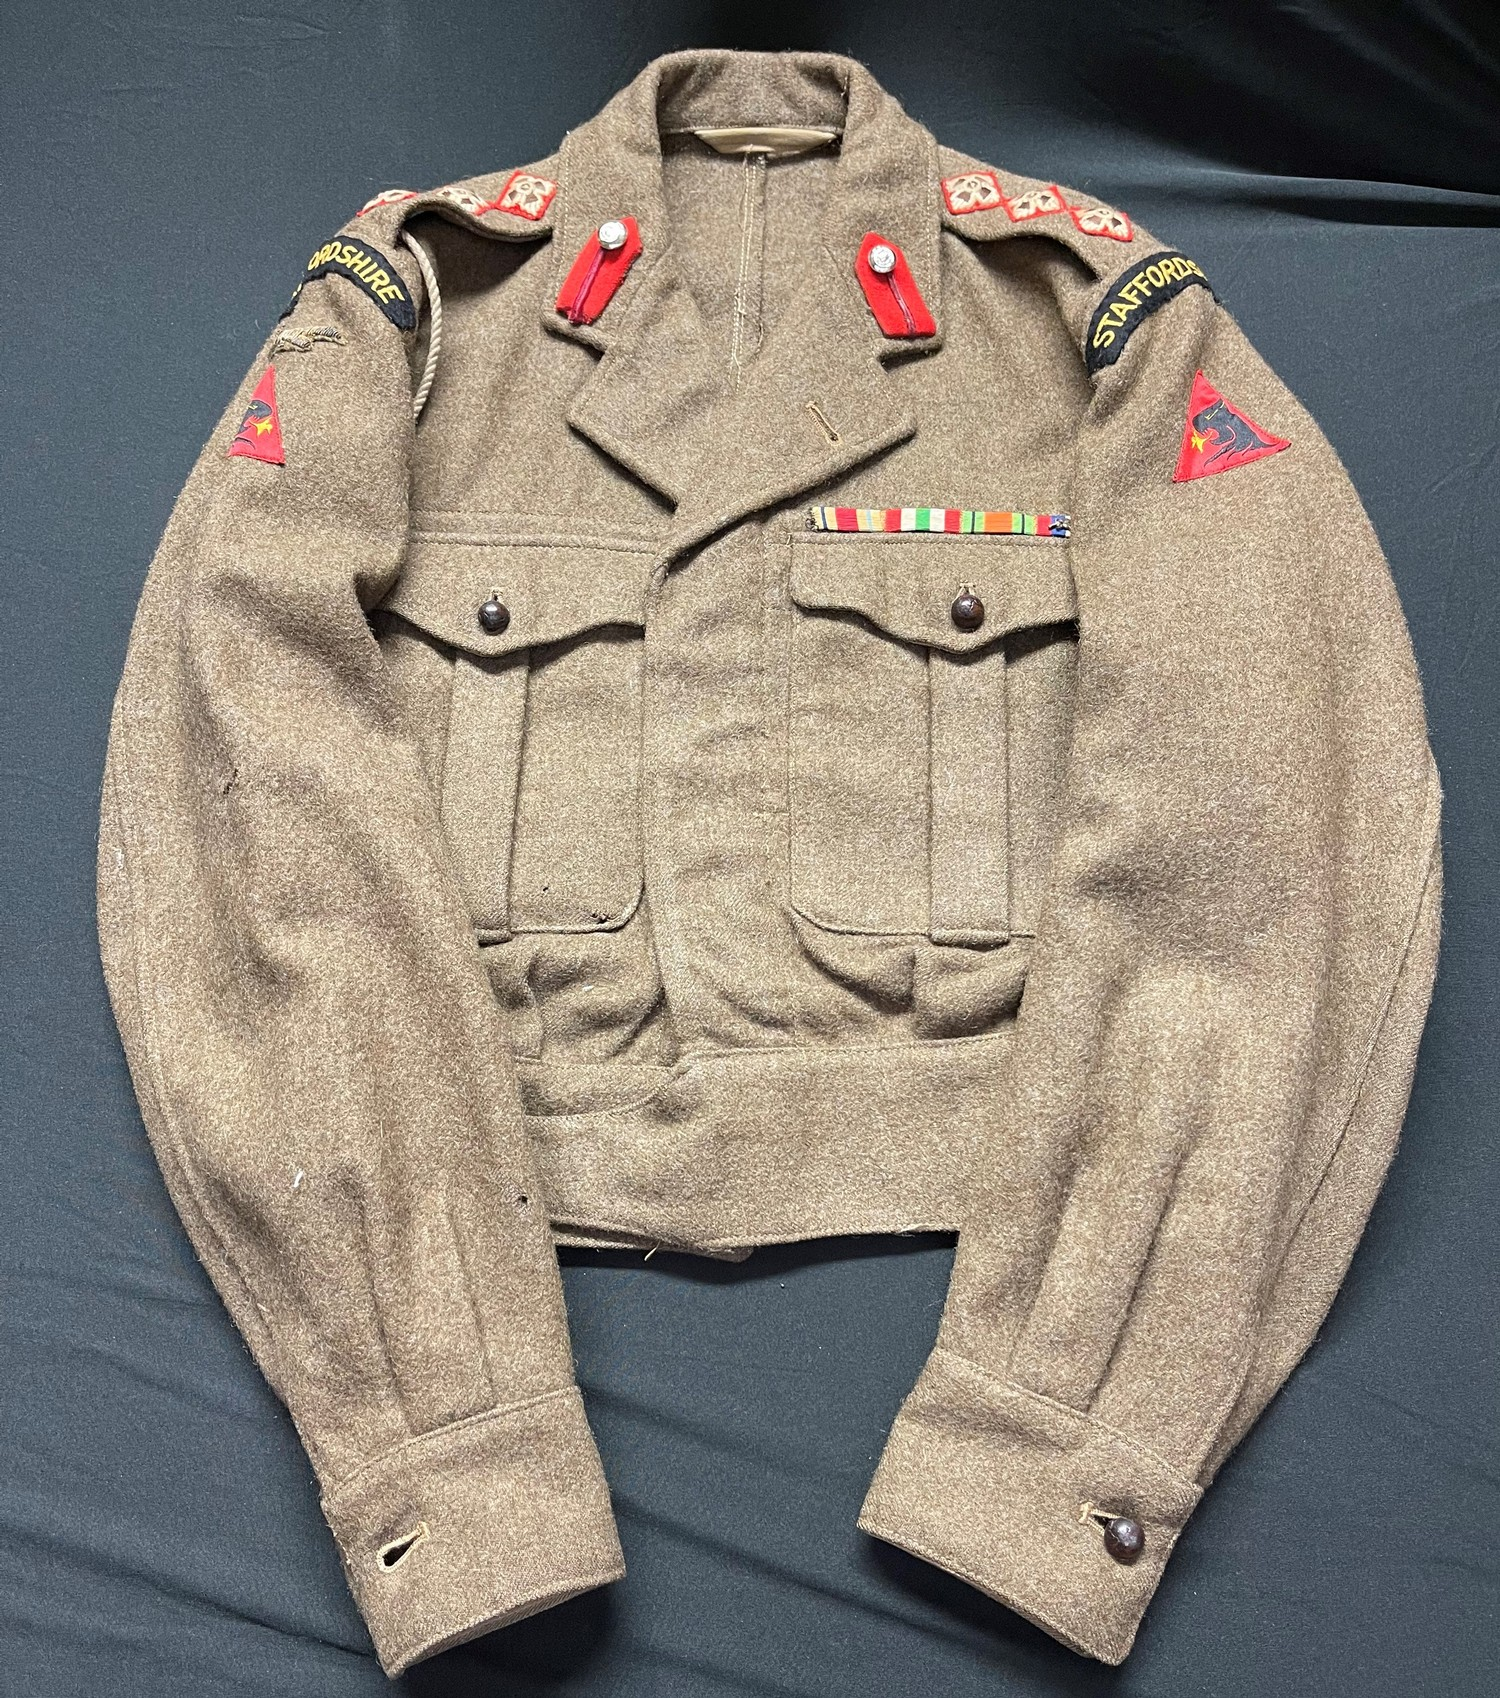 British Army Staffordshire Regiment 1949 Pattern Captains Battledress Blouse. Complete with all